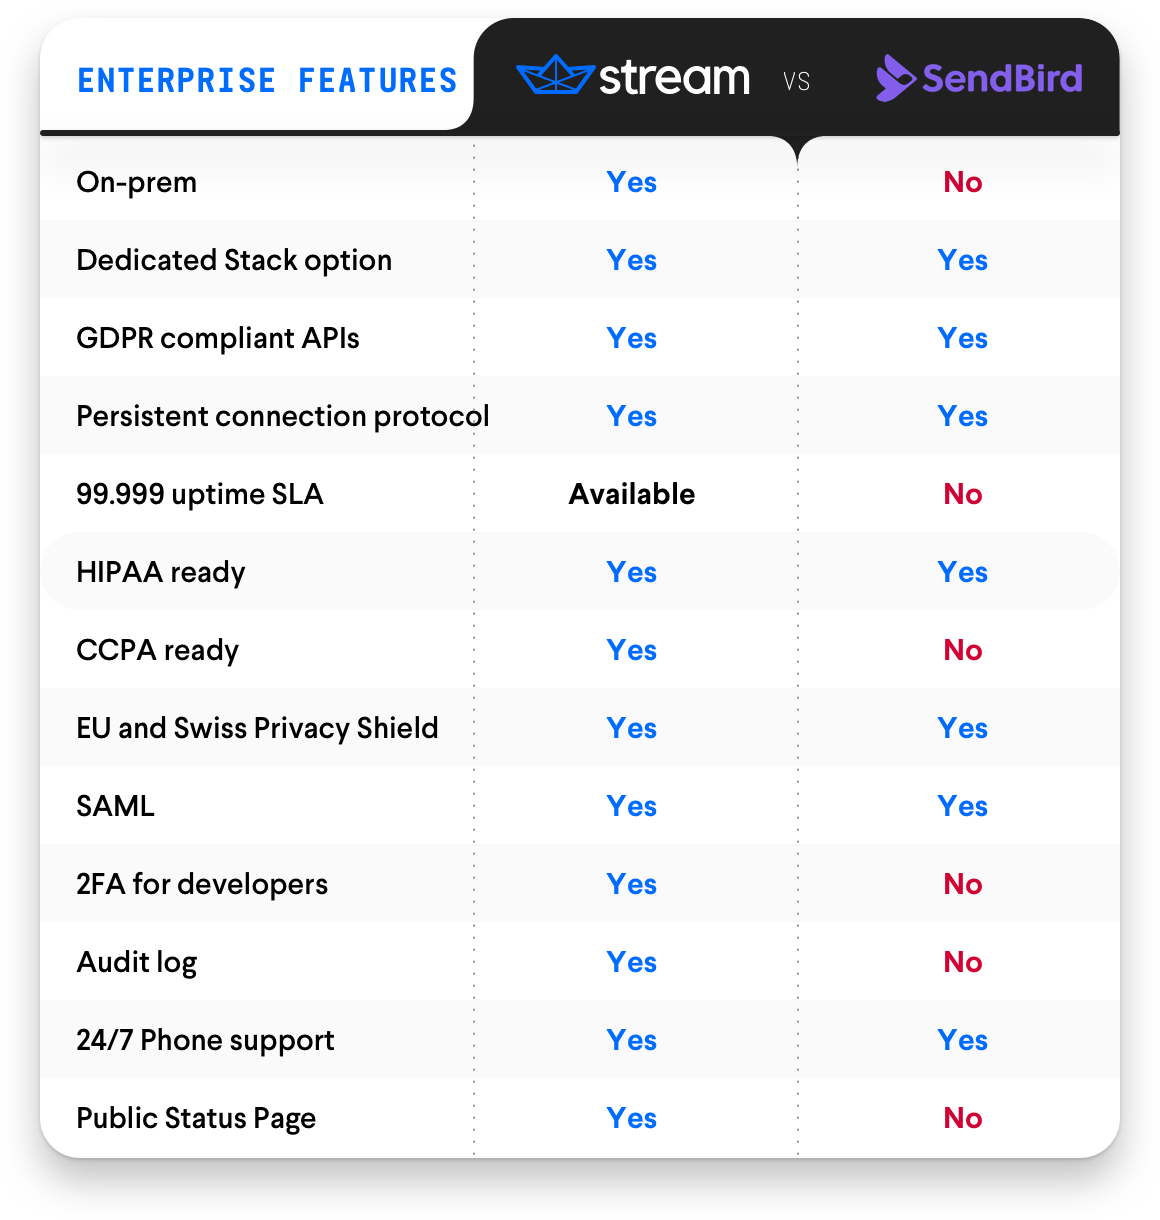 Enterprise Features – Stream Chat vs. SendBird